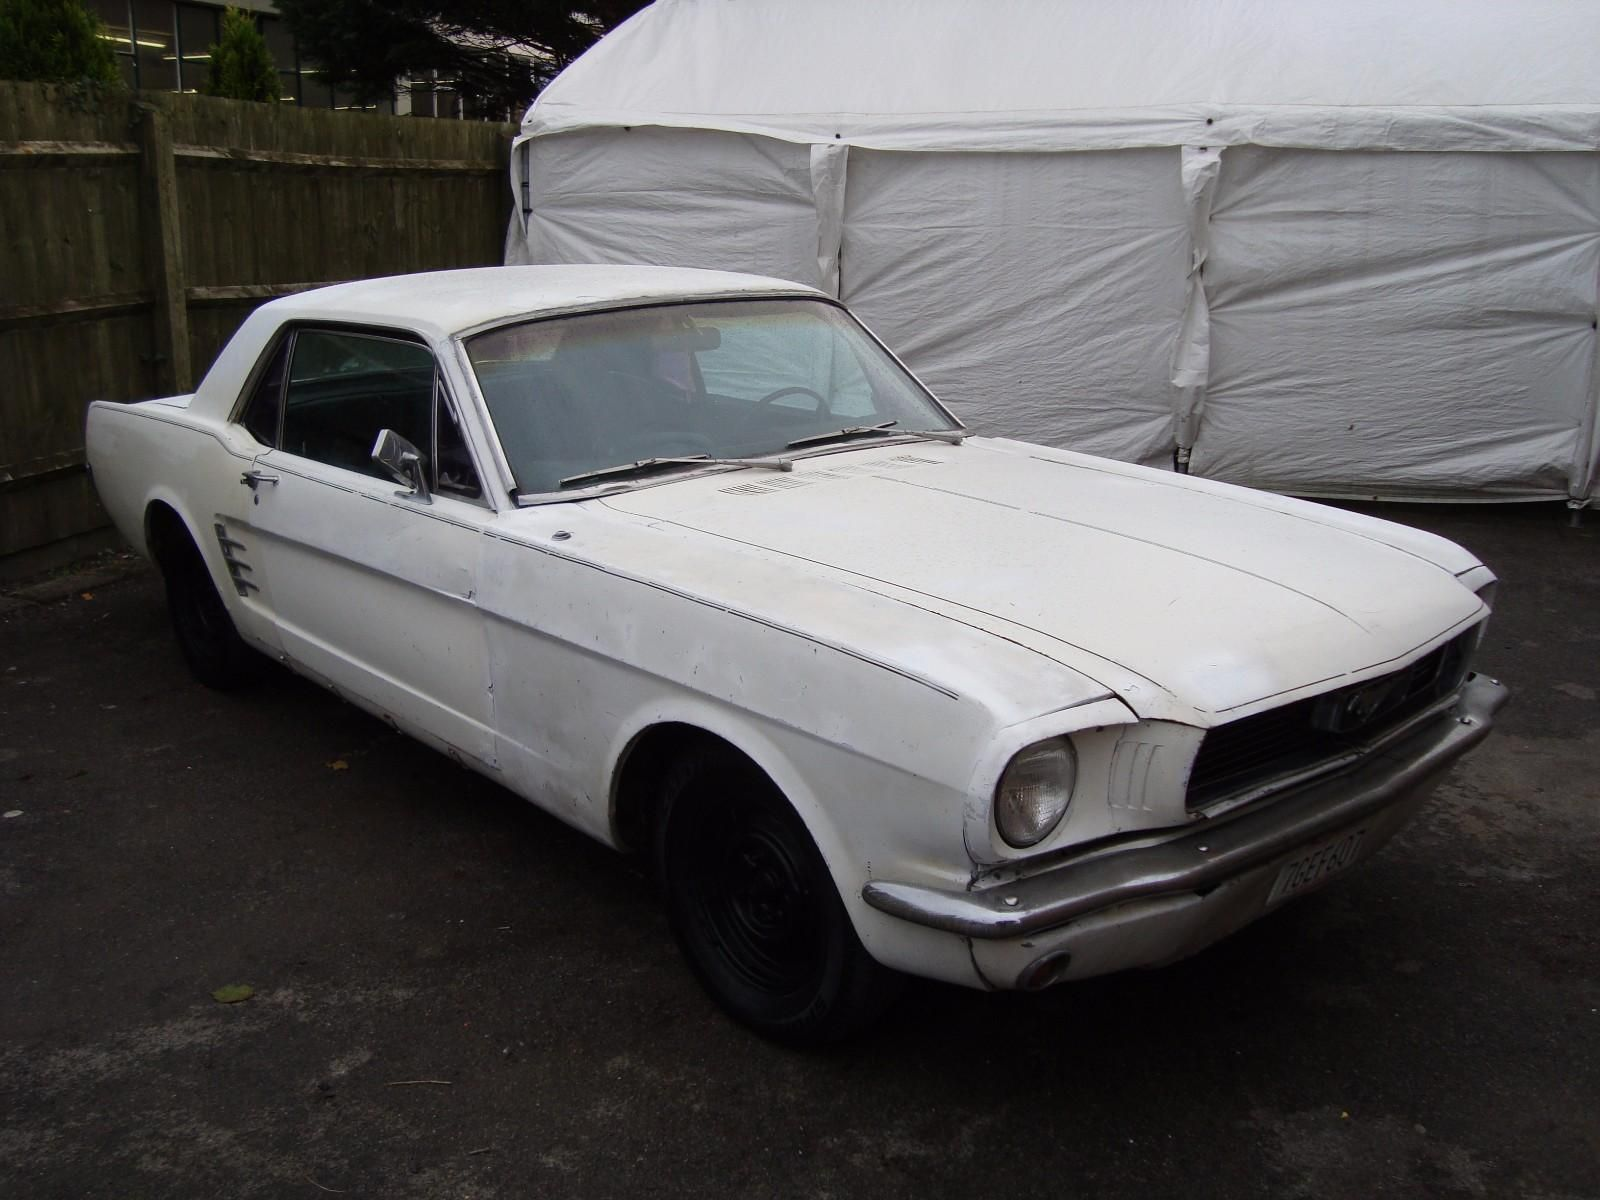 Check out this fast Ford Ford Mustang 200 6 Coupe Auto 1965 factory